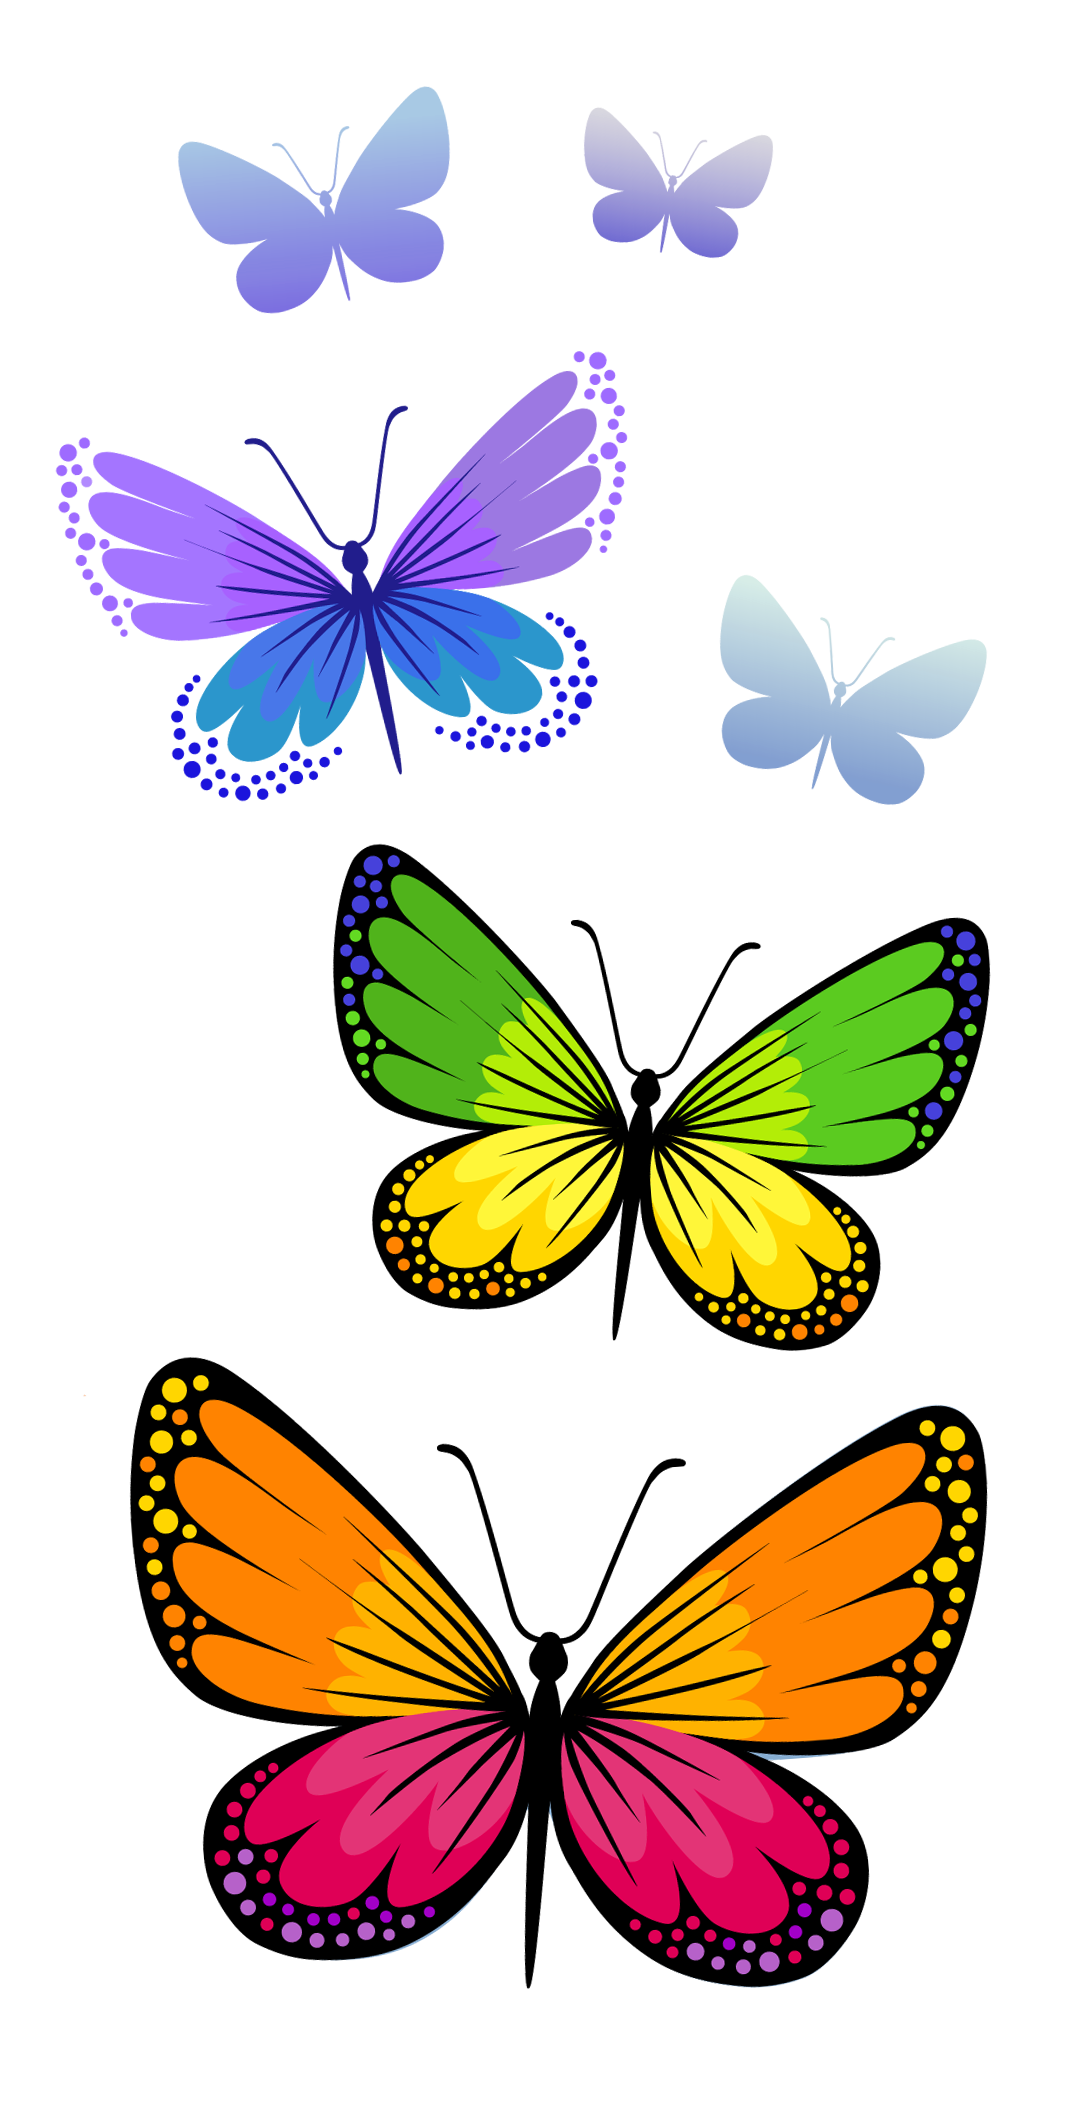 banner black and white download Circle clipart butterfly. Butterflies composition png image.